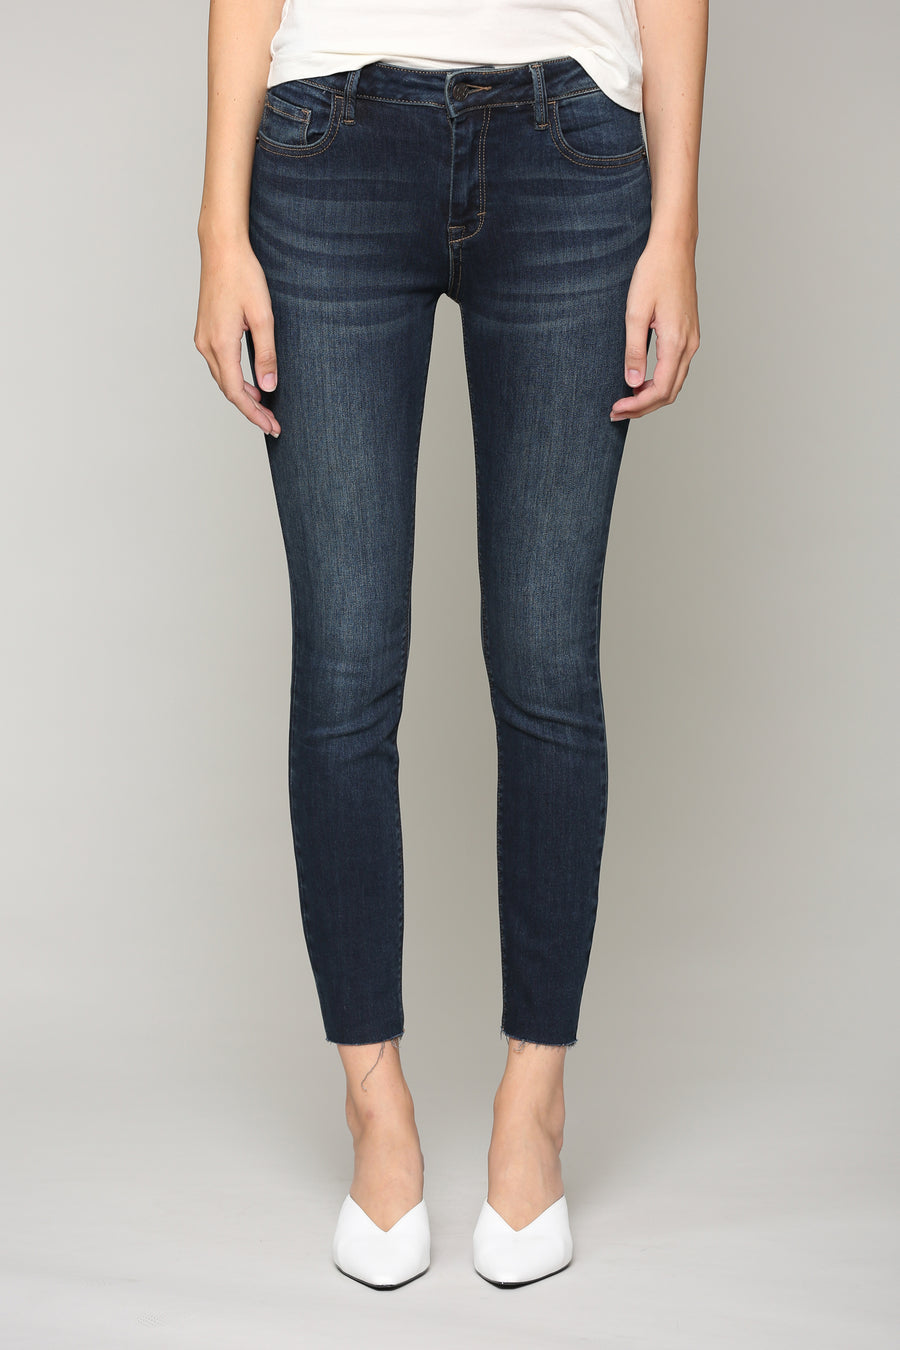 AMELIA <p/> DARK WASH SKINNY WITH A RAW HEM